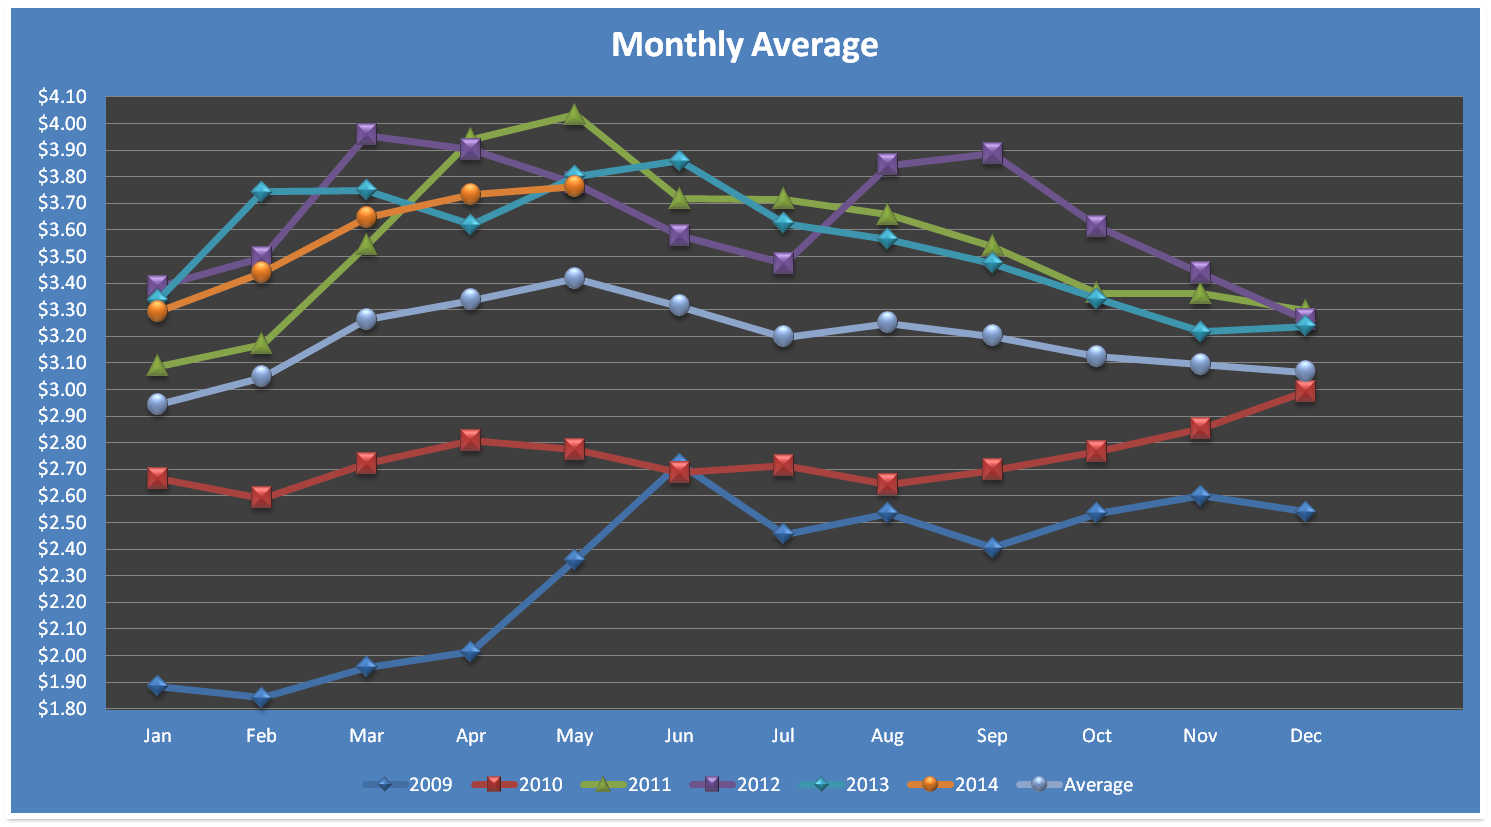 Monthly Average Trend in Indiana